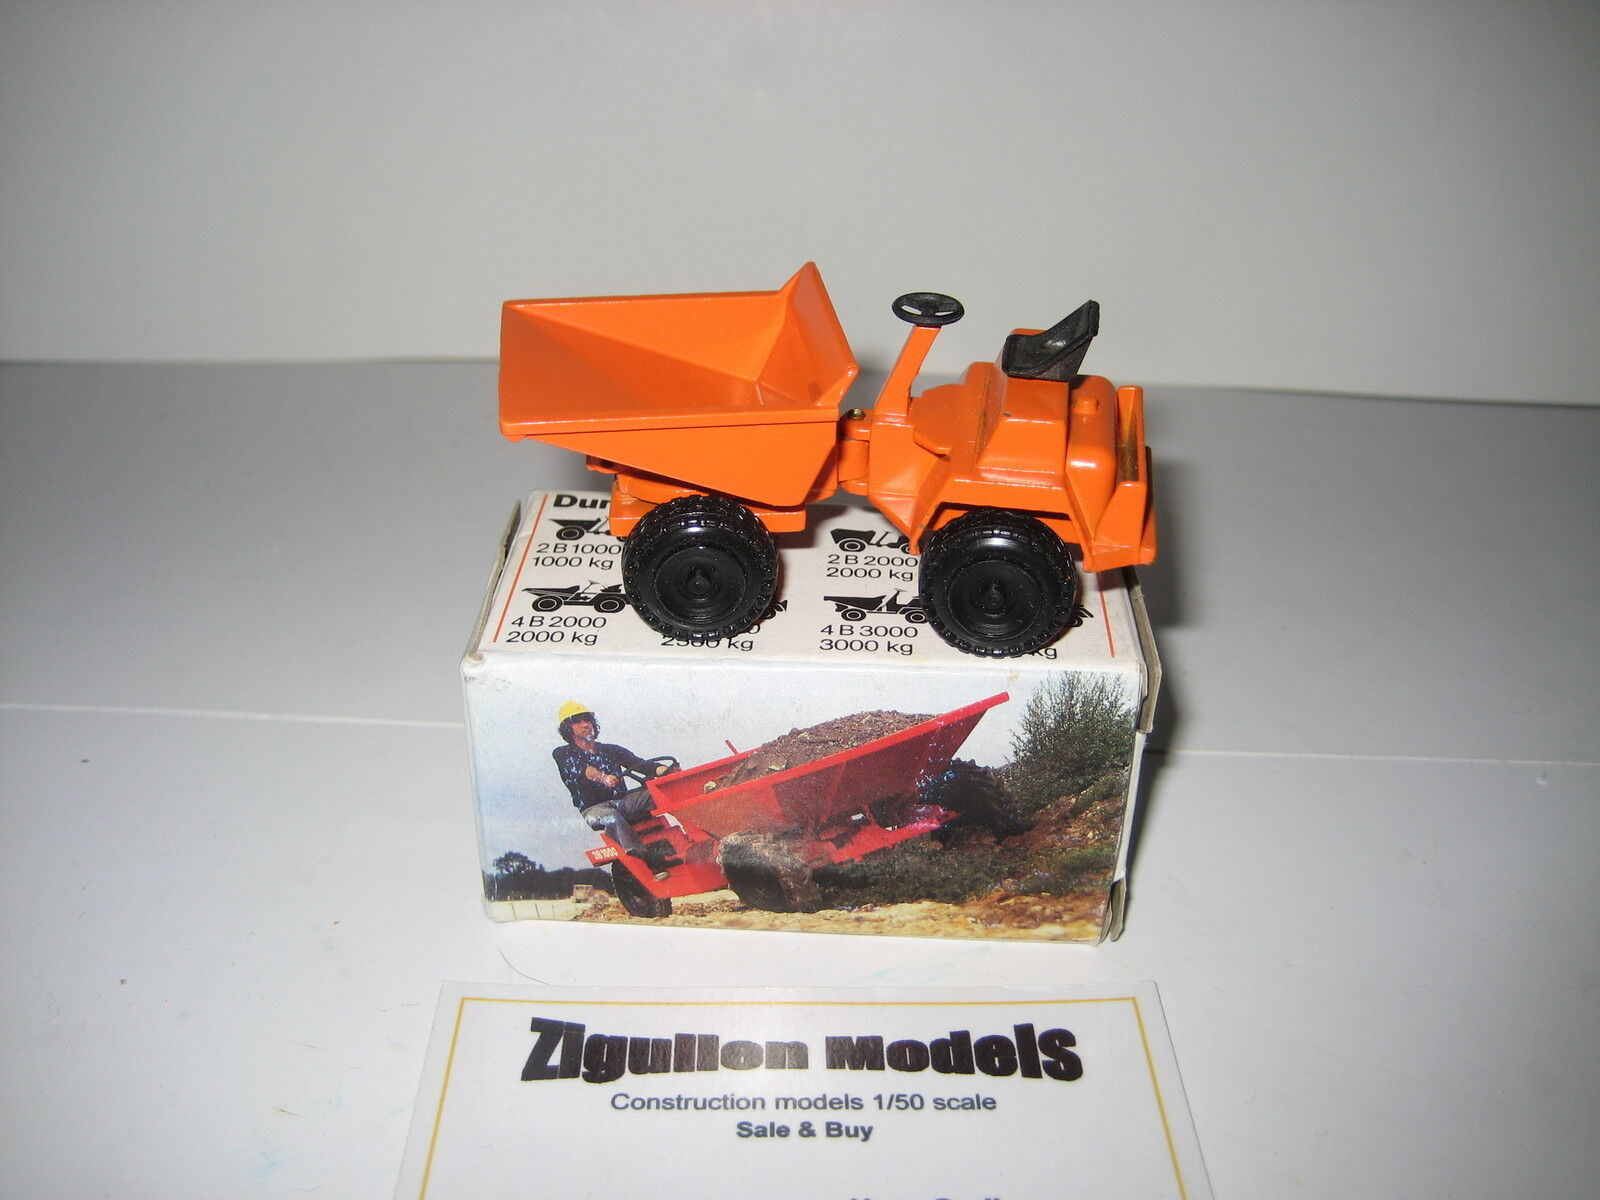 Wibau ibh dumper  244.1 nzg 1 50 original packaging